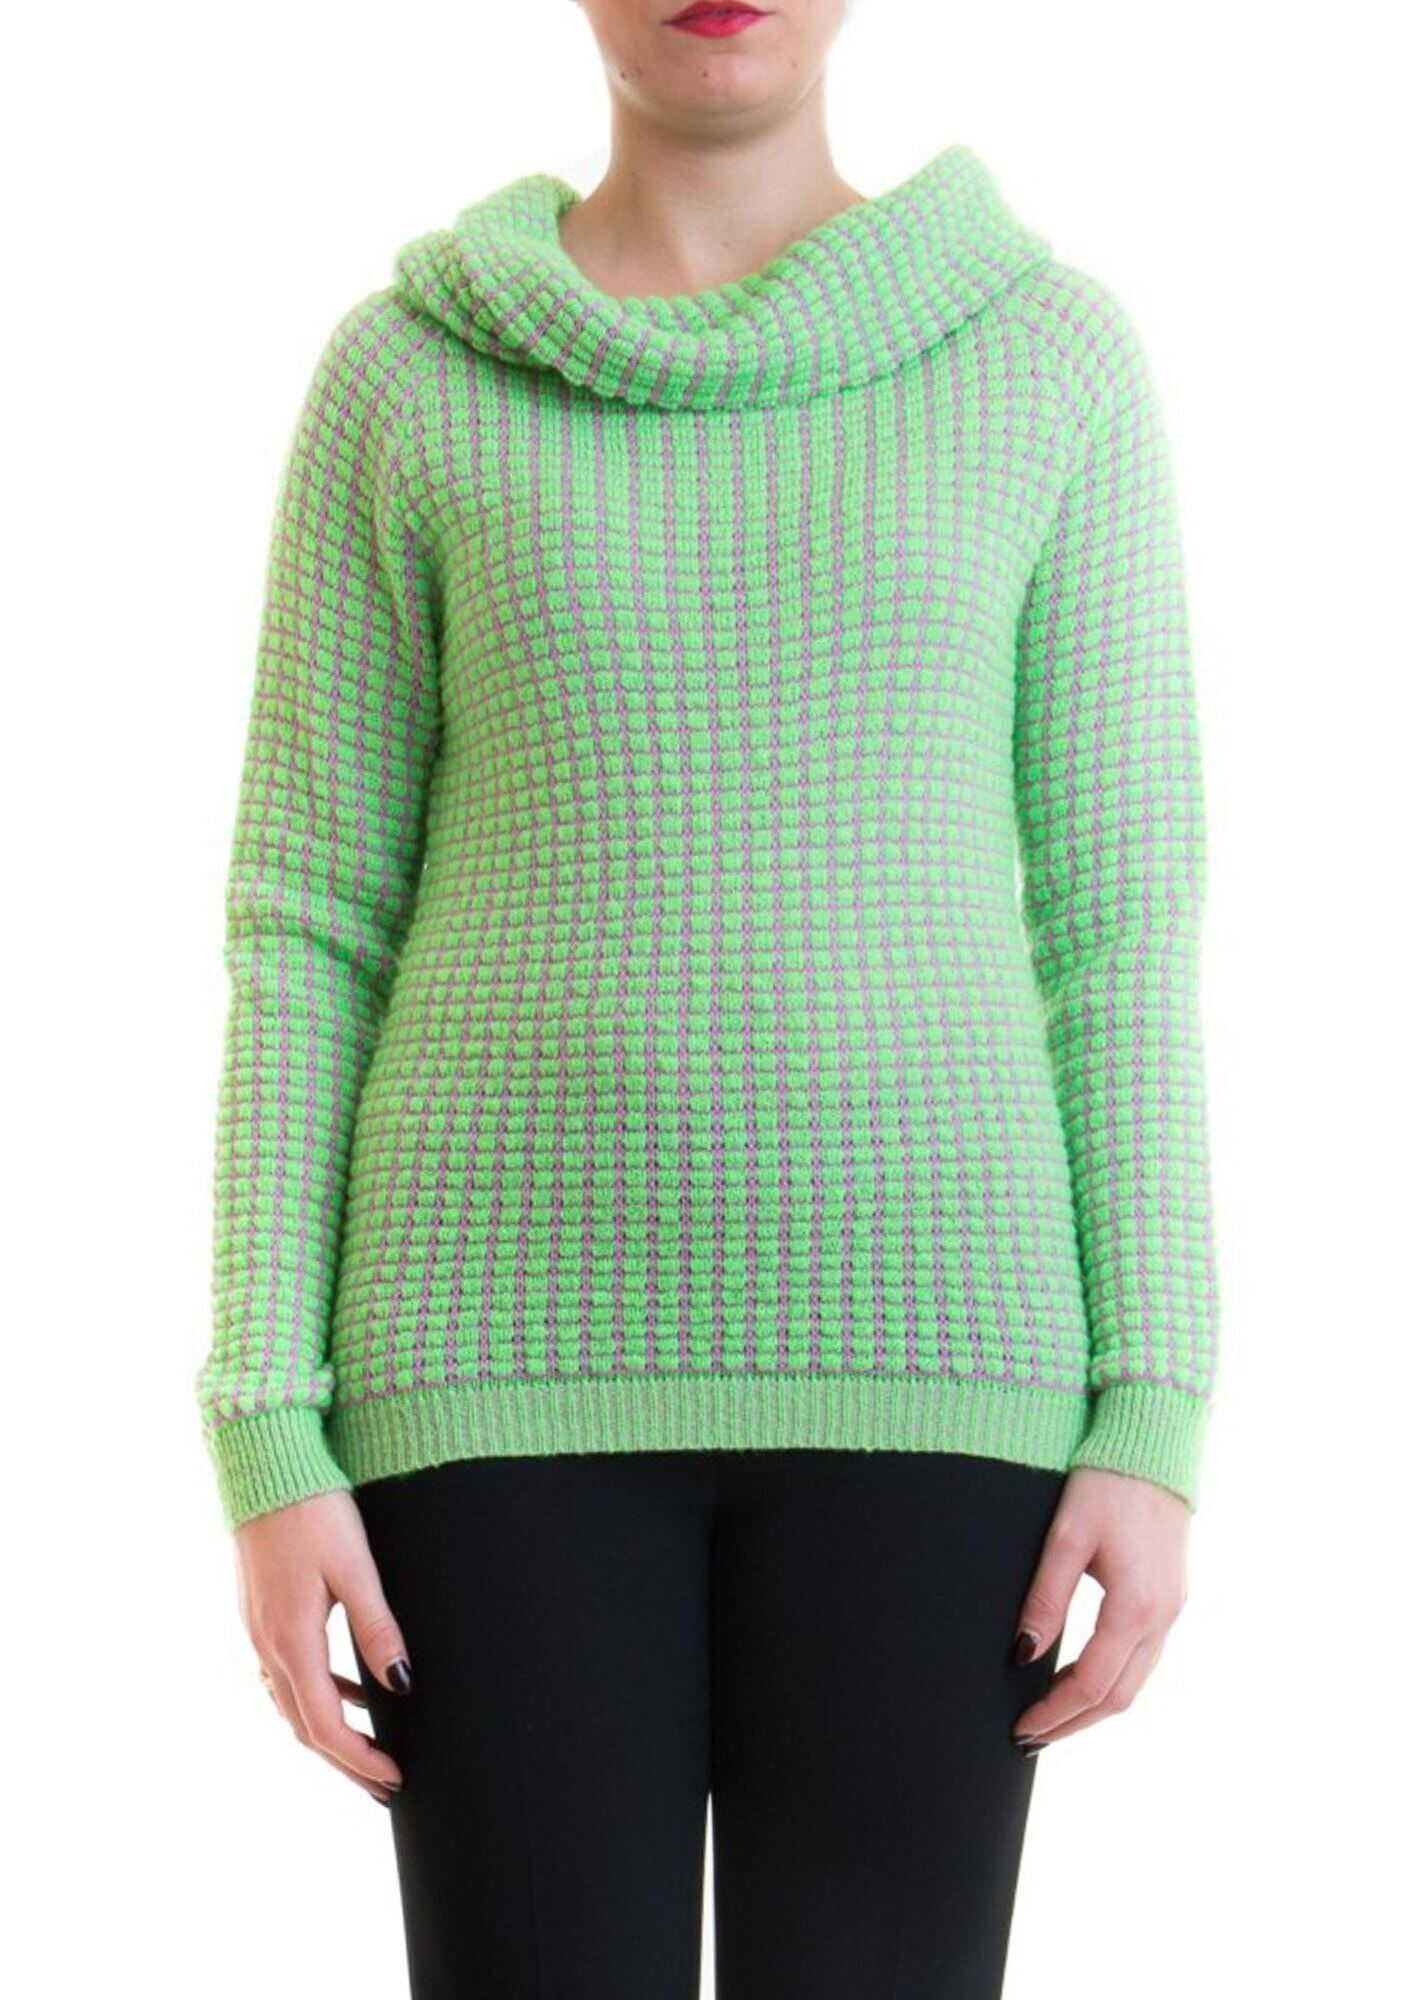 Blumarine Patterned Sweater With Cowl Collar Green